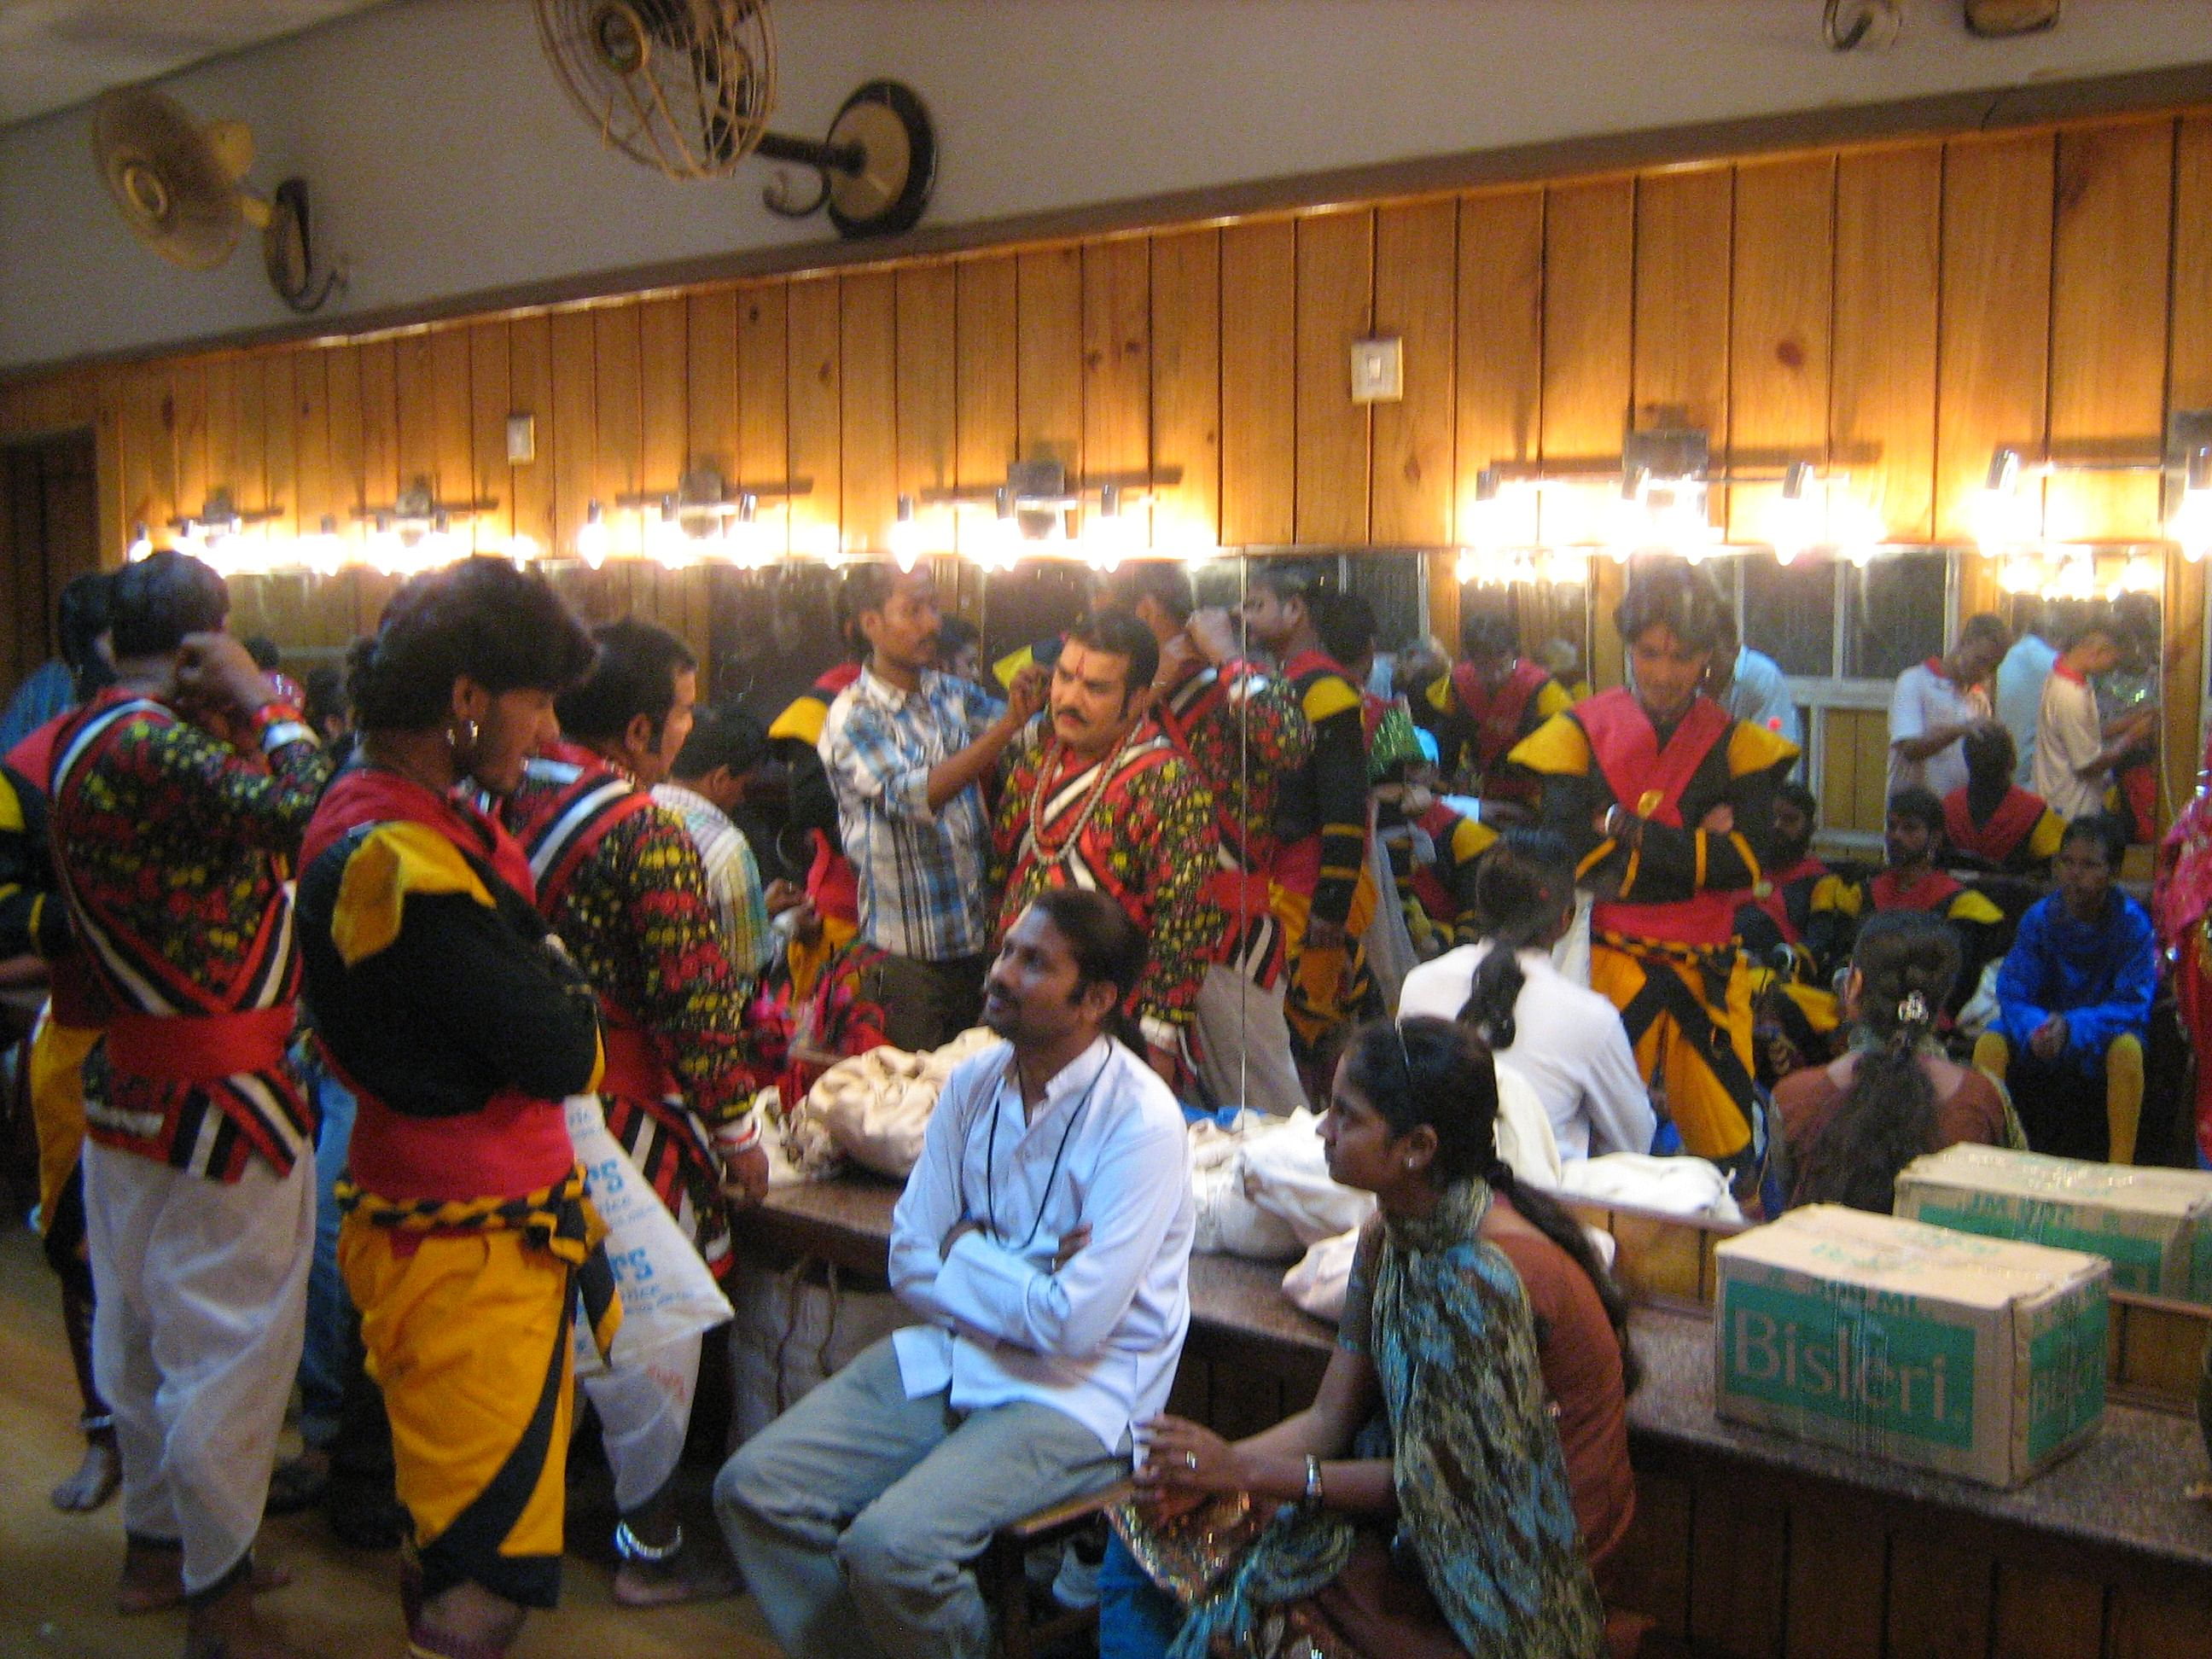 The bustling greenroom at Rabindra Sadan – actors prepare for their performance. (Credit: Sujit Bhar\WFS)